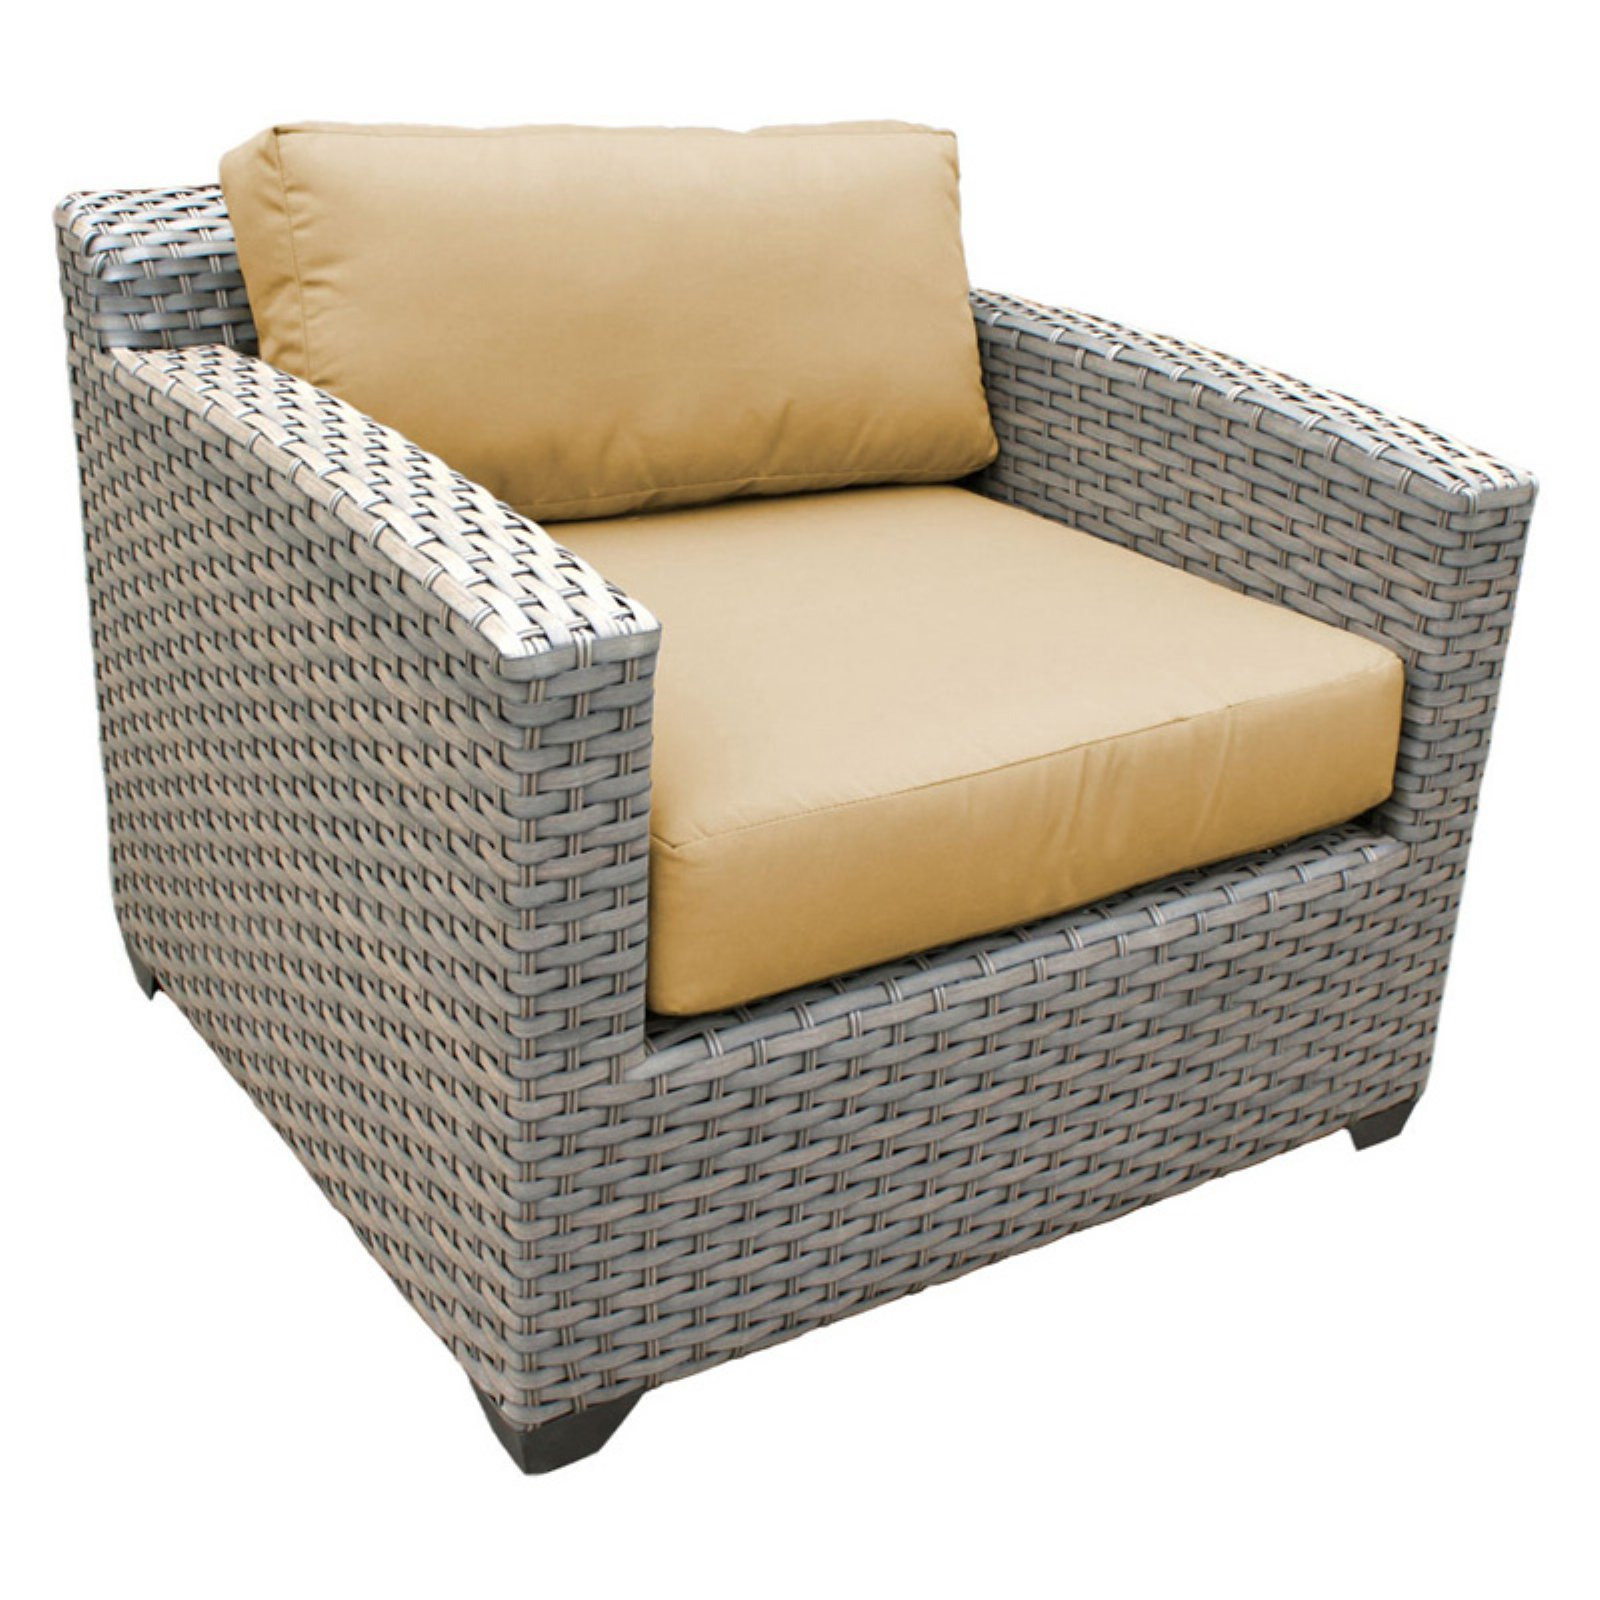 TK Classics Florence Wicker Outdoor Club Chair - Set of 2 Cushion Covers